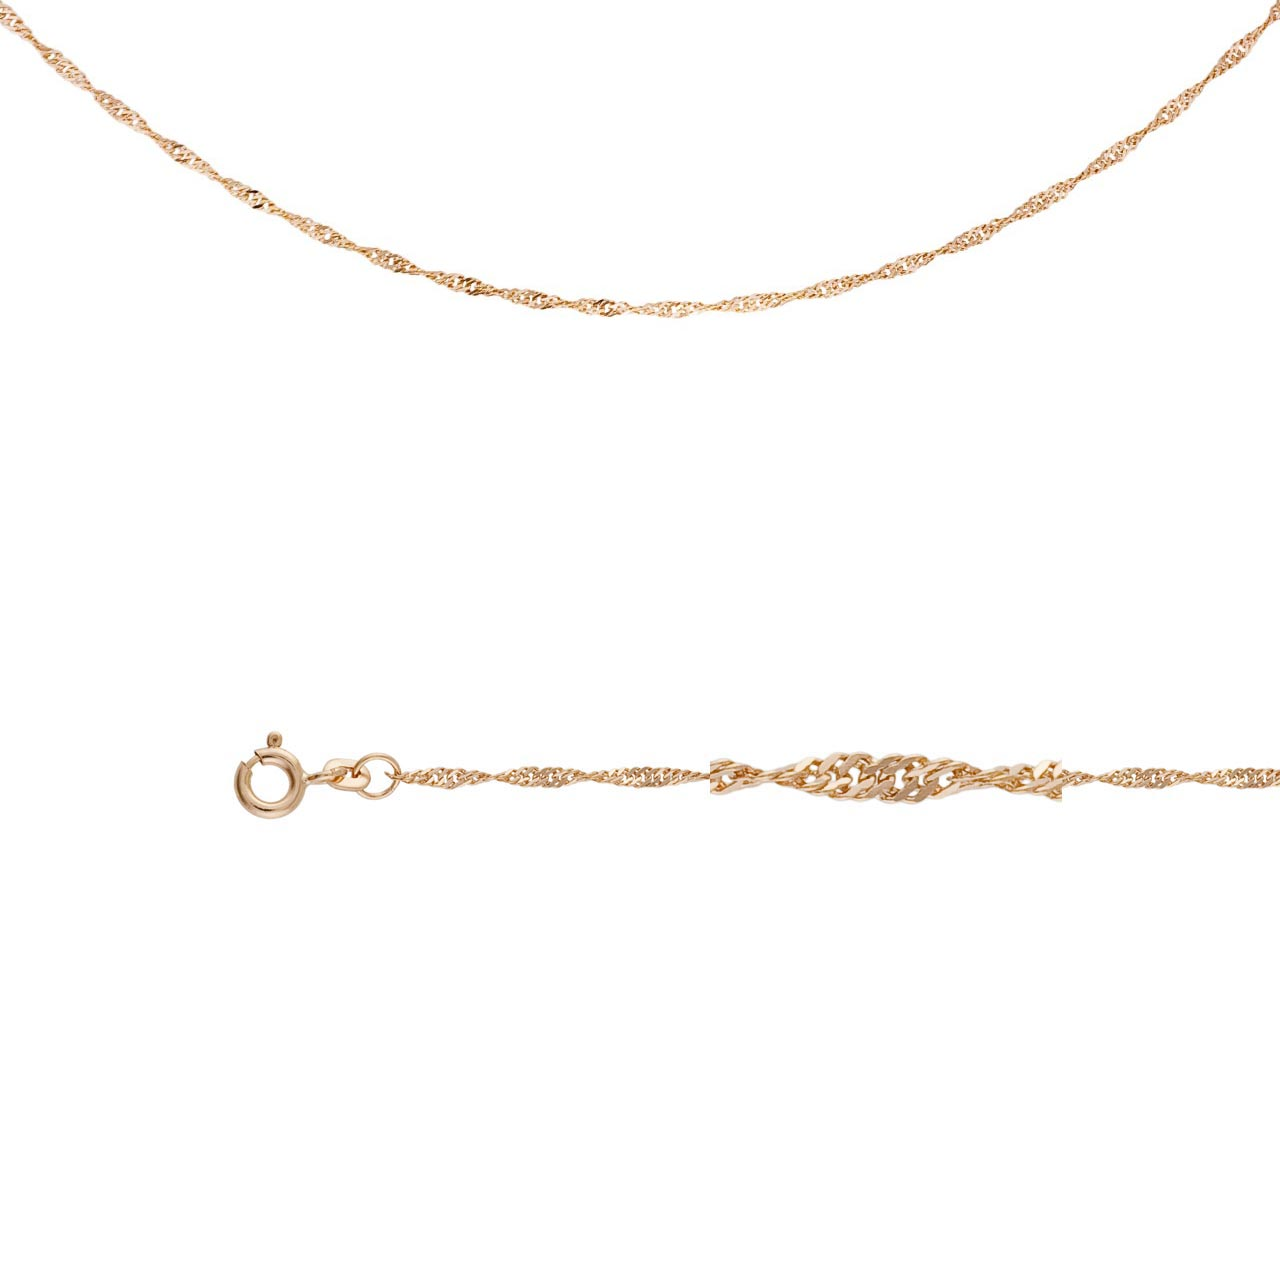 Singapore-link Chain (0.3 mm Gold Wires)